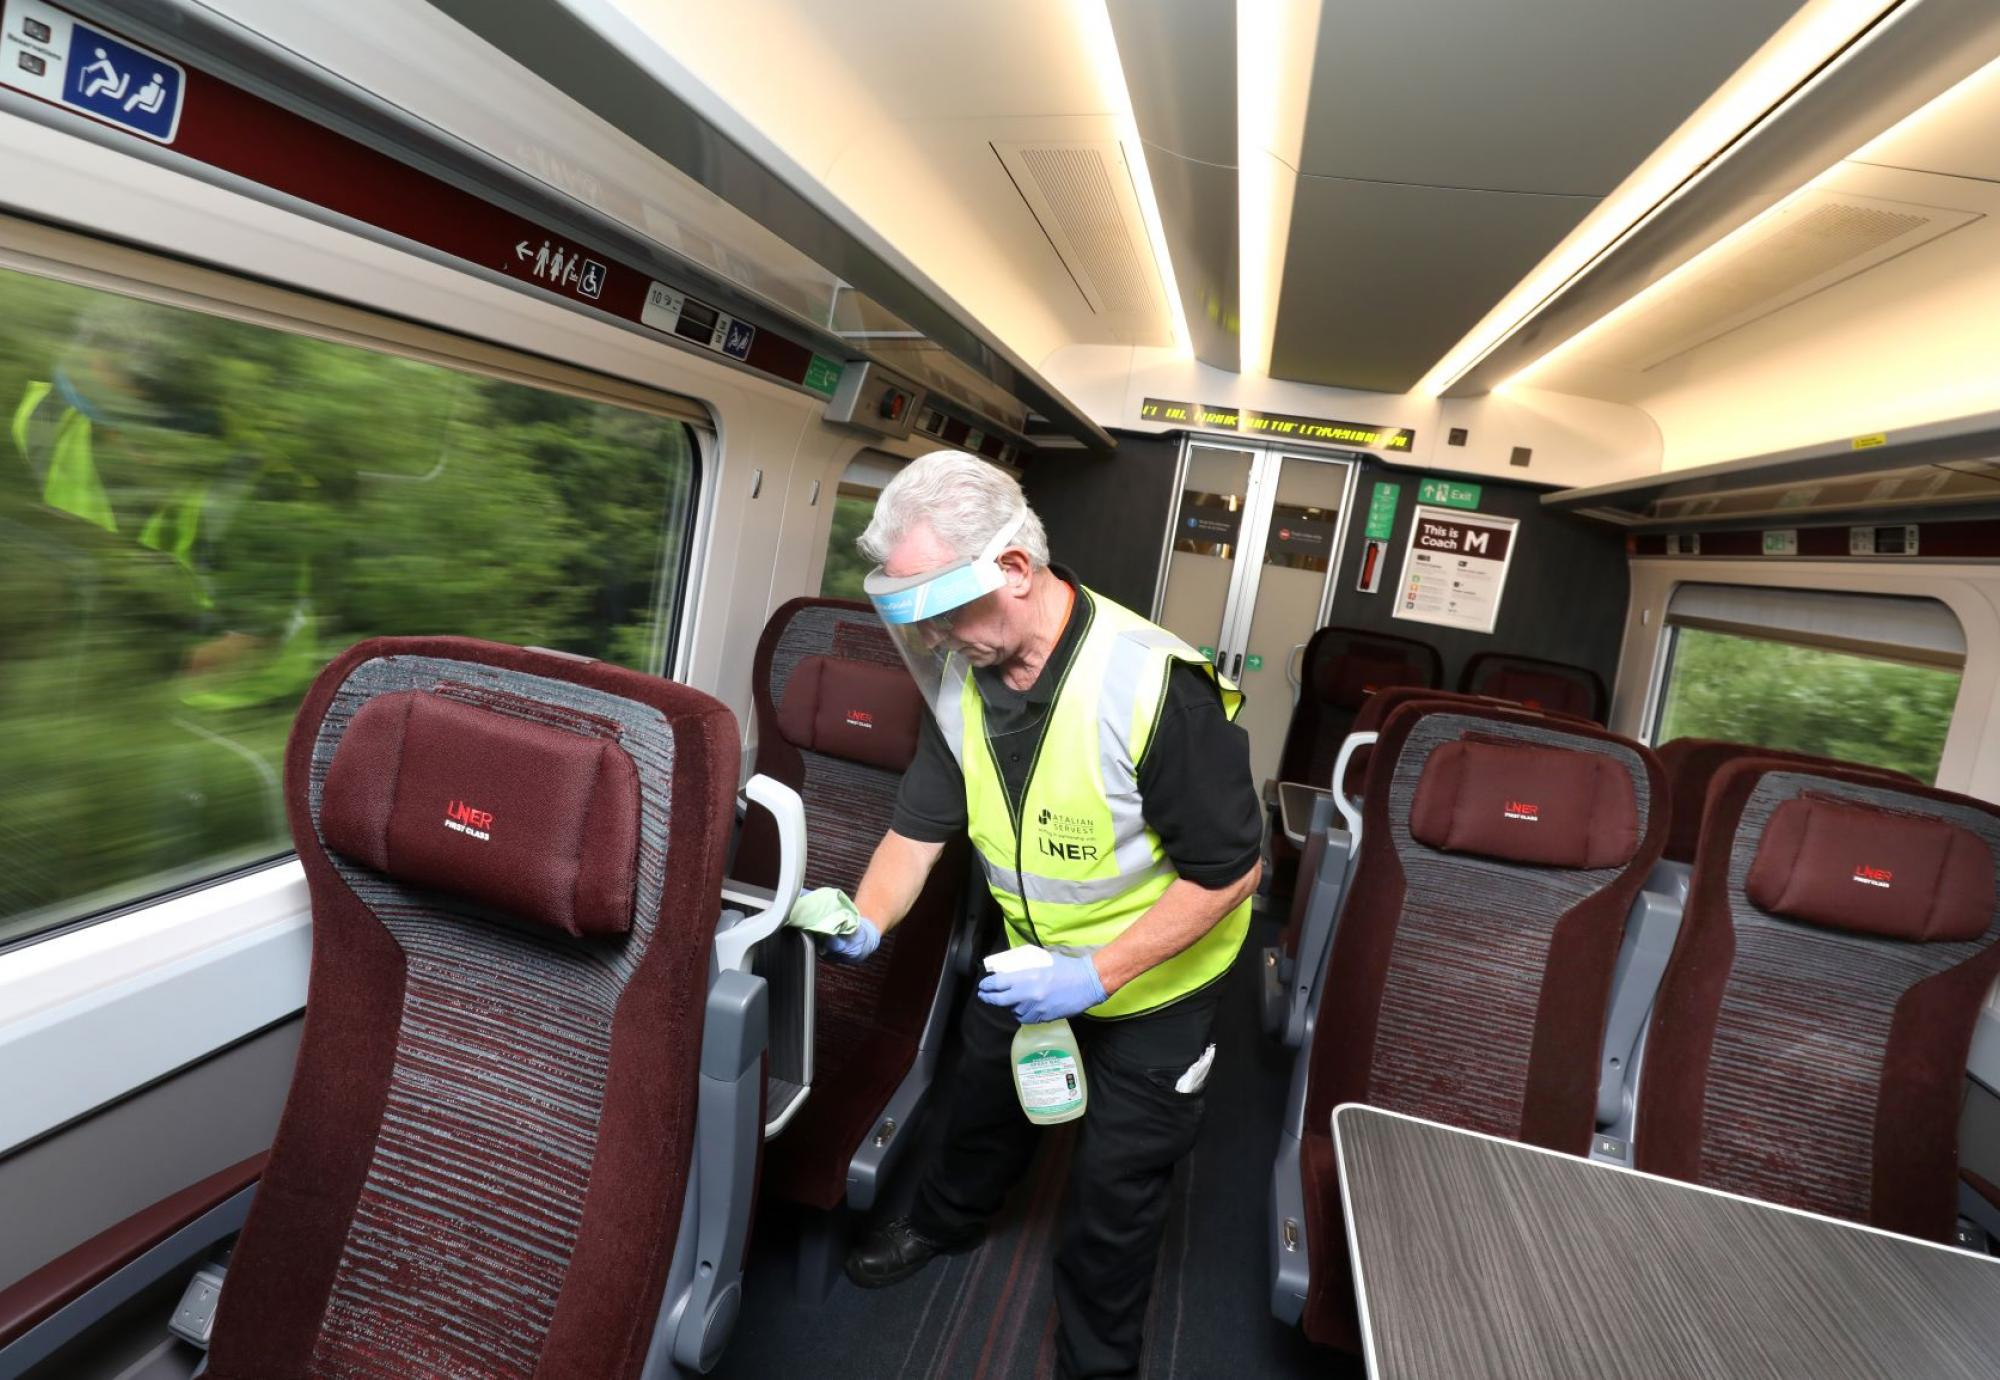 LNER: Record cleaning measures continue to keep customers safe